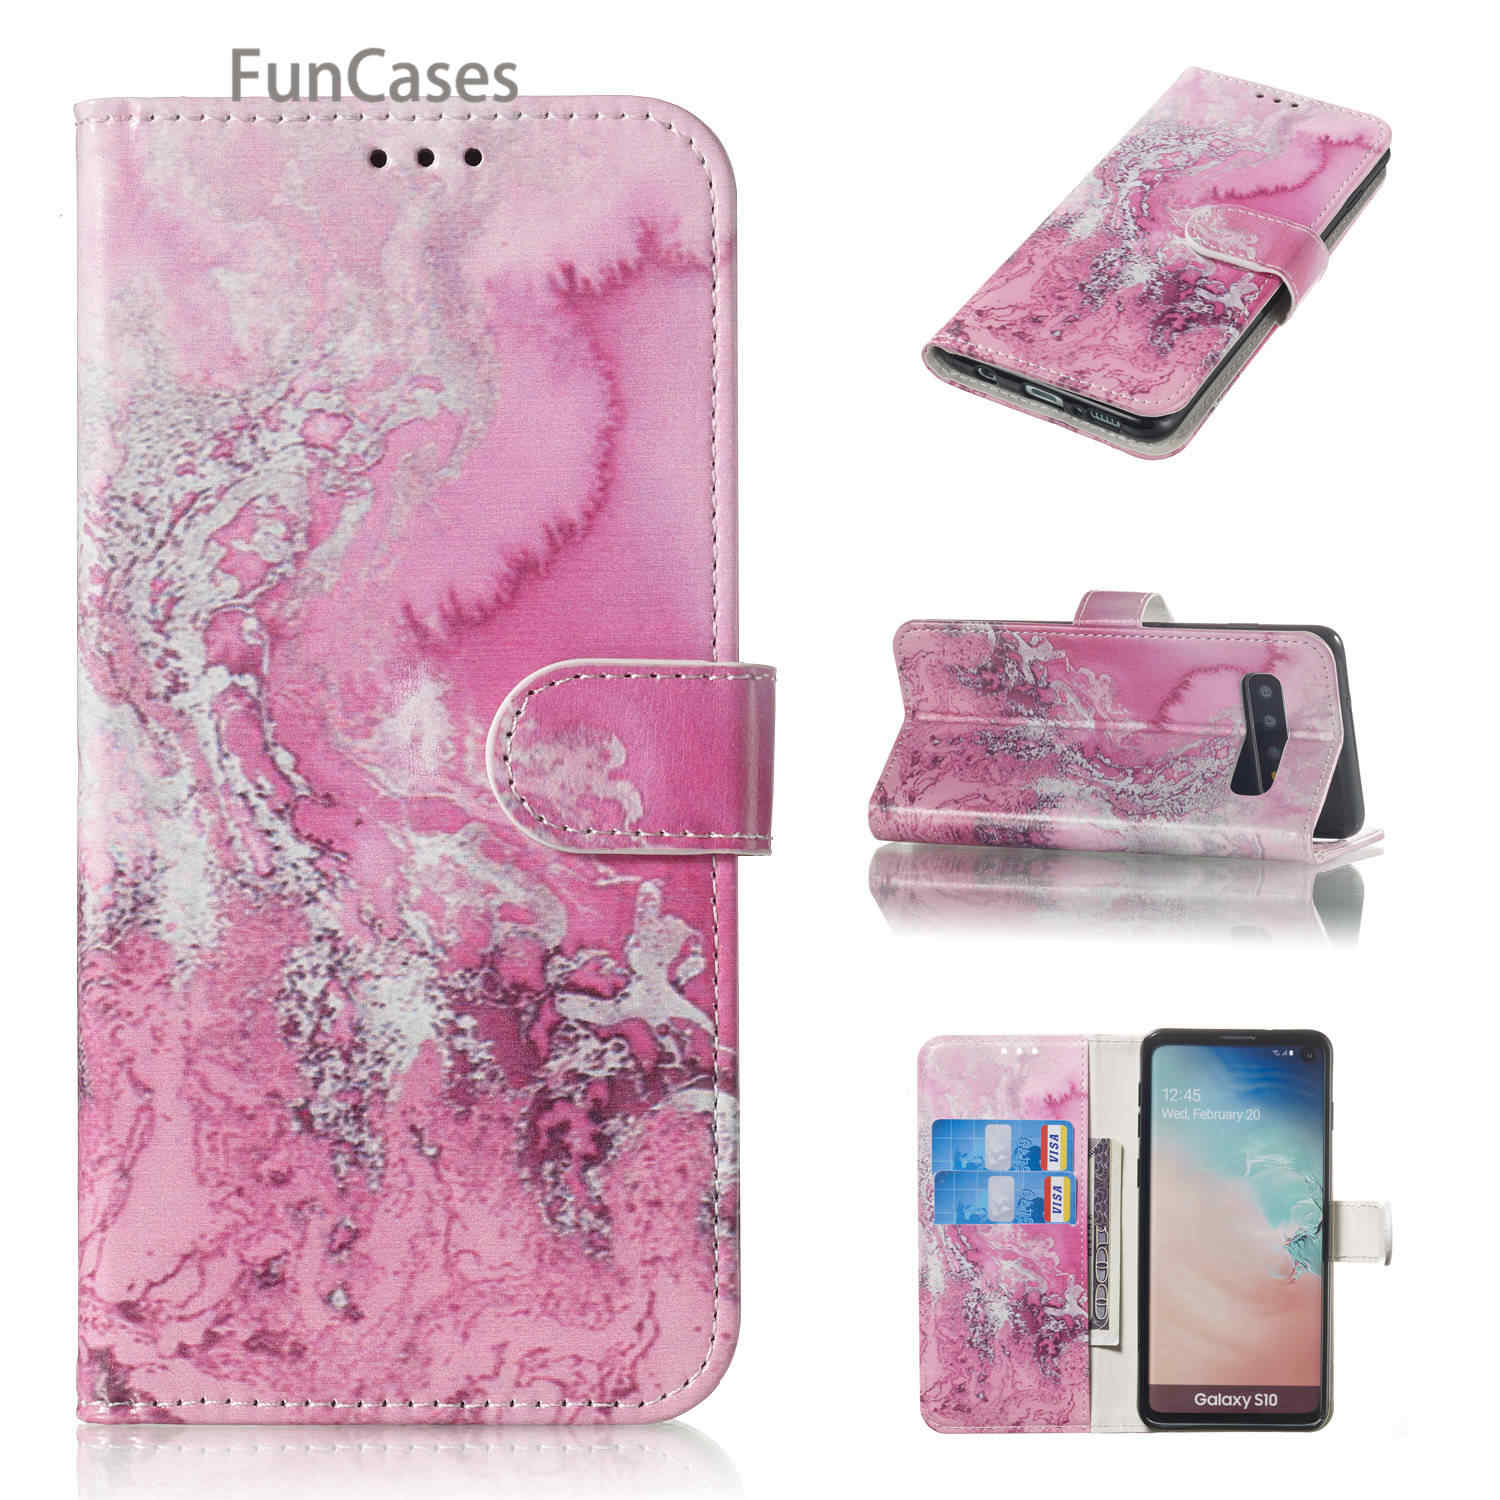 White Flip Wallet Case Book For etui Samsung S10 Plus Marble Cases sFor Samsung Galaxy S10E S10 5G Lite S9 Plus M10 M20 M30 M40